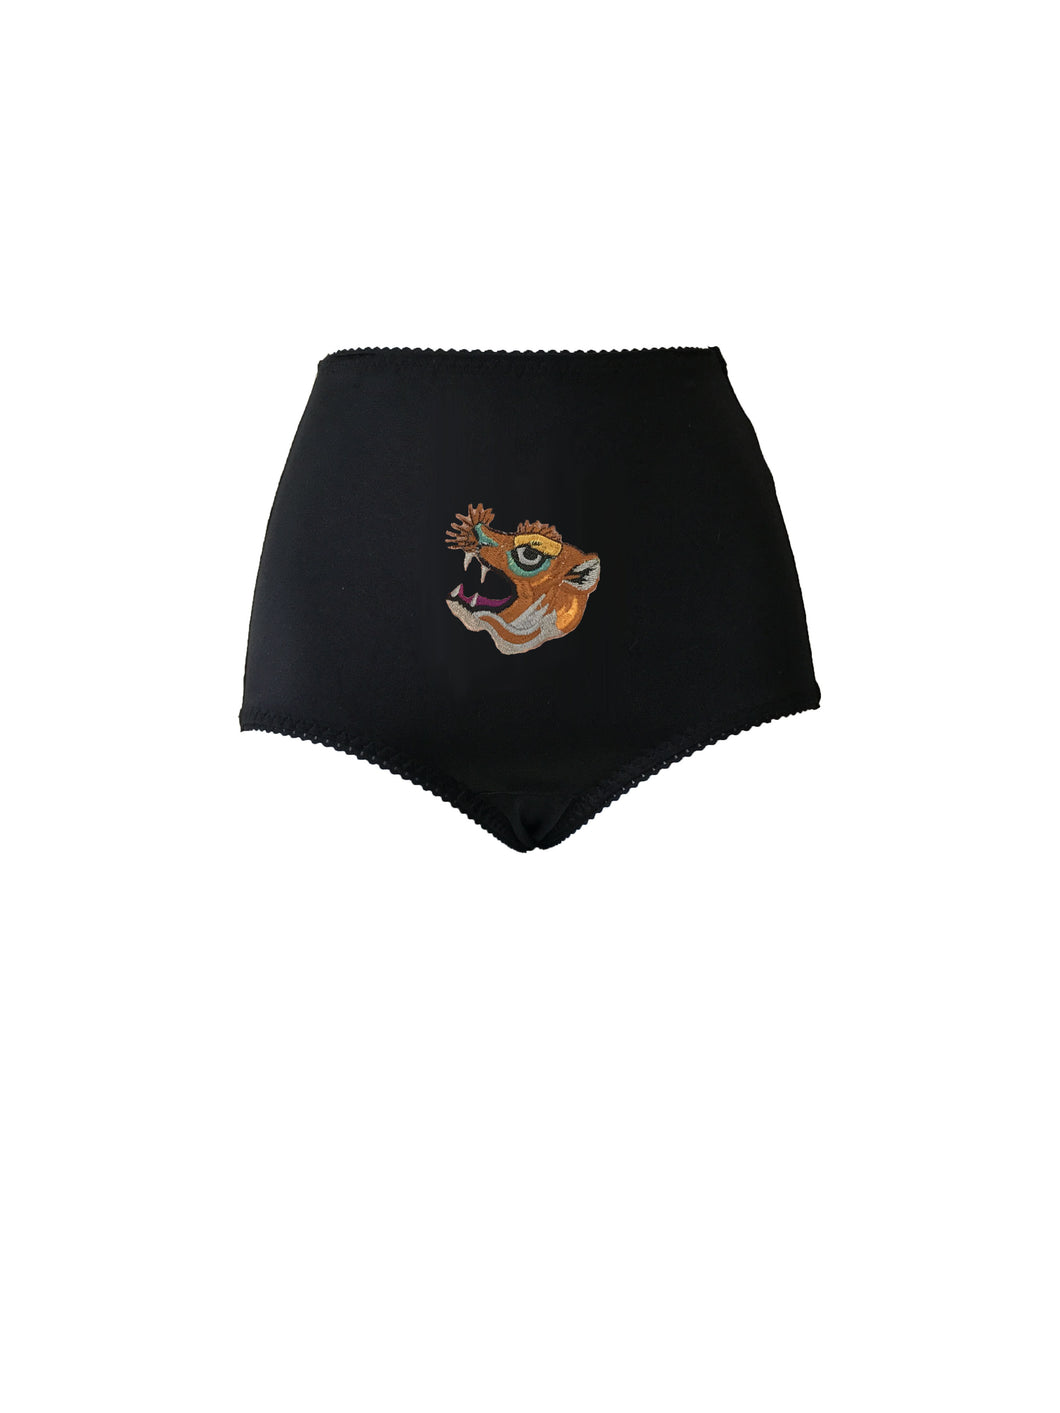 Wildcat Embroidered Panty